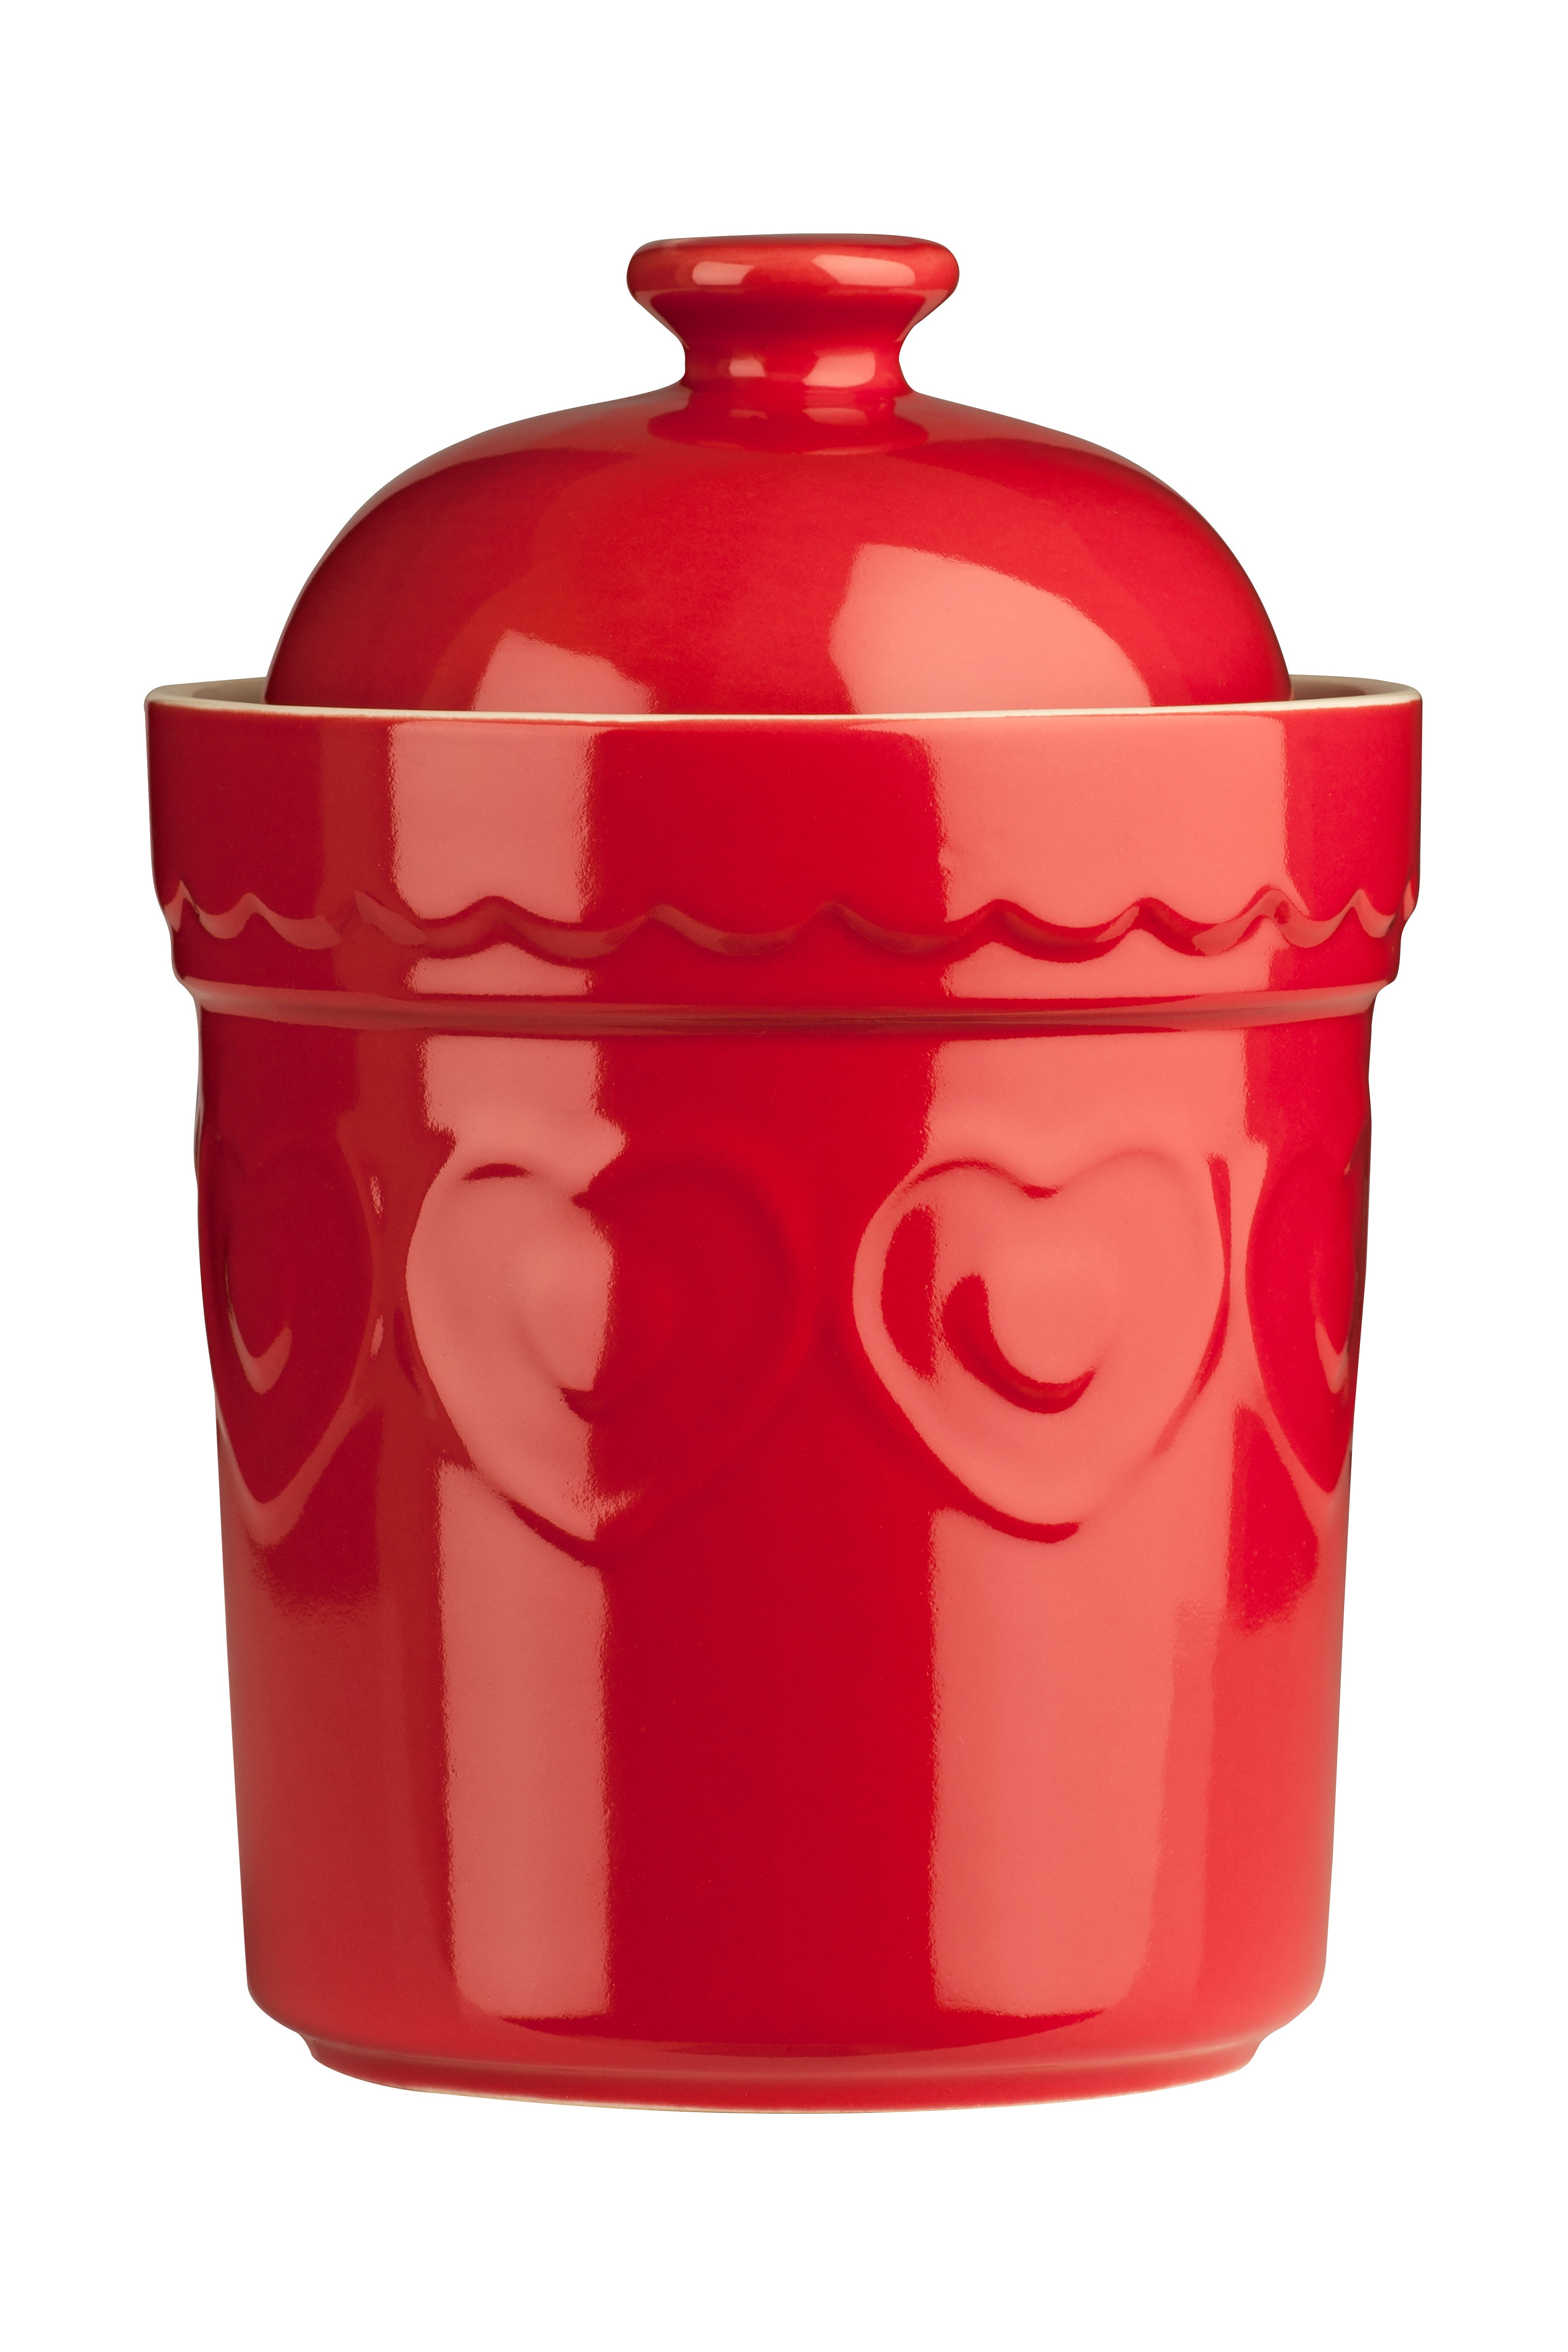 Sweet Heart Storage Canister, Red - 0.8ltr